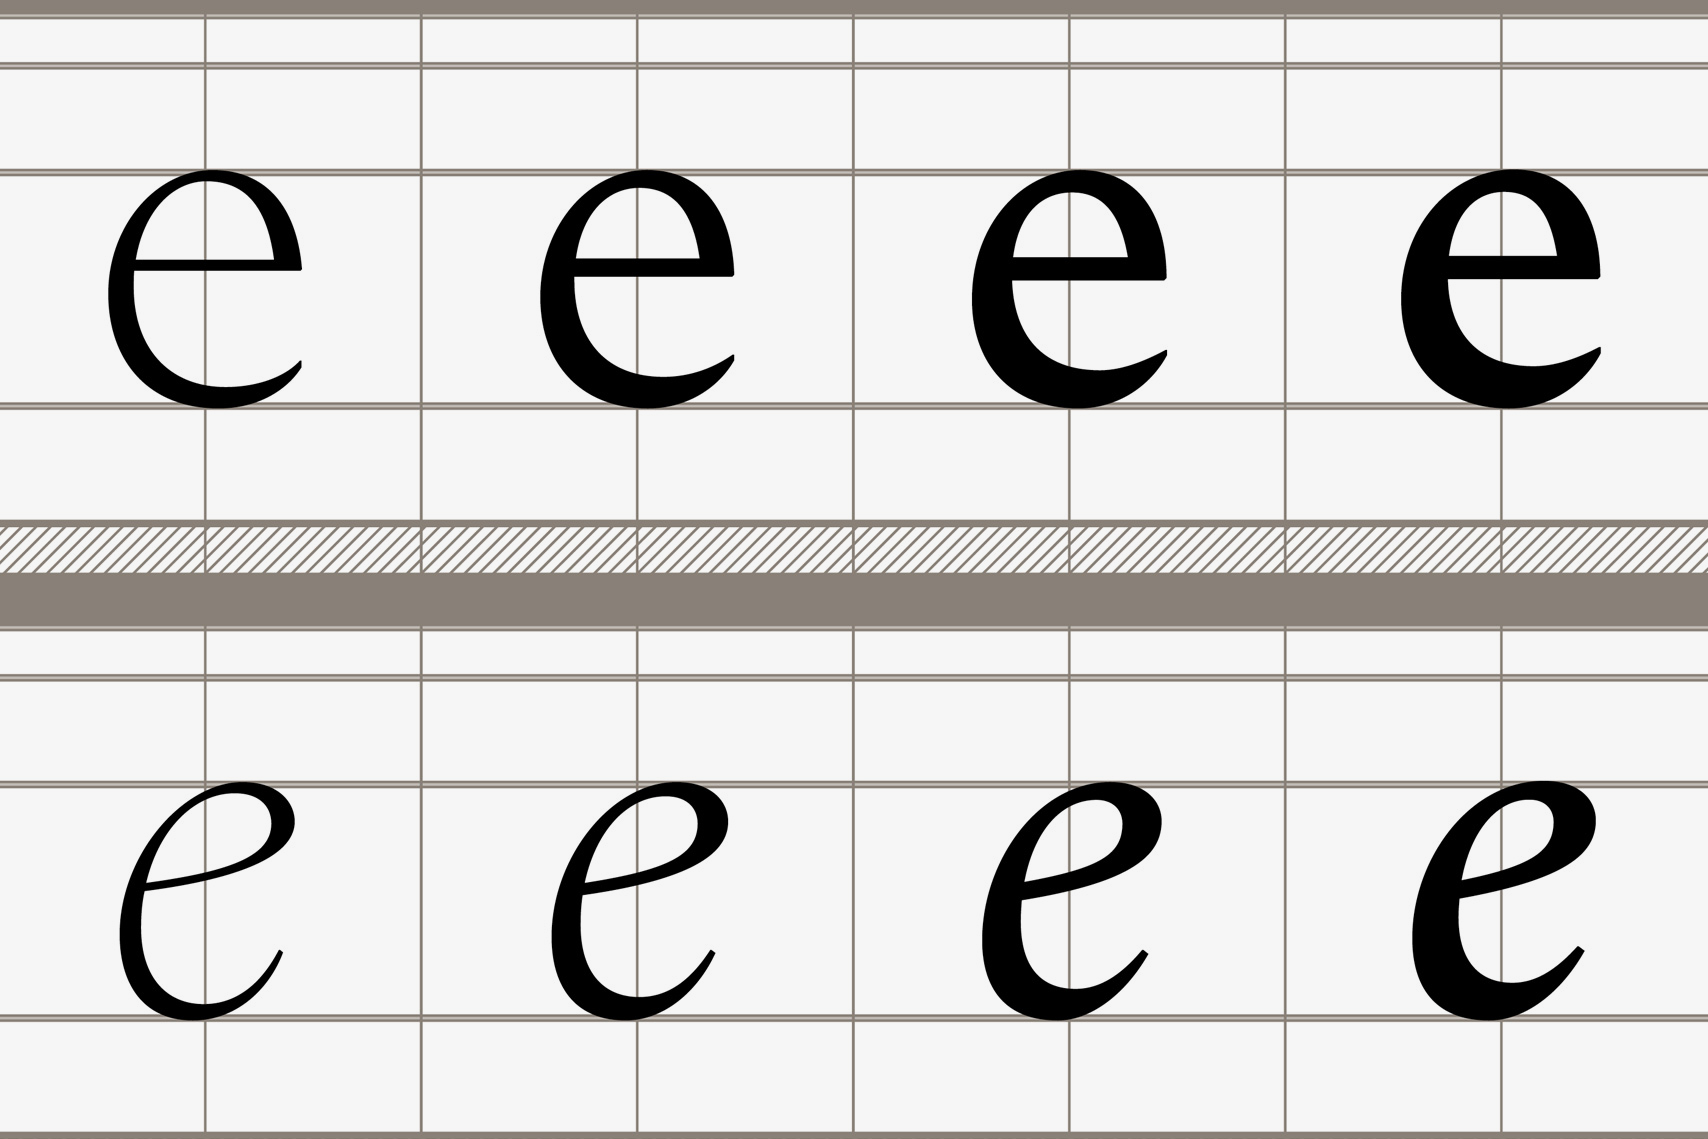 Spectral: A New Screen-First Typeface - Library - Google Design